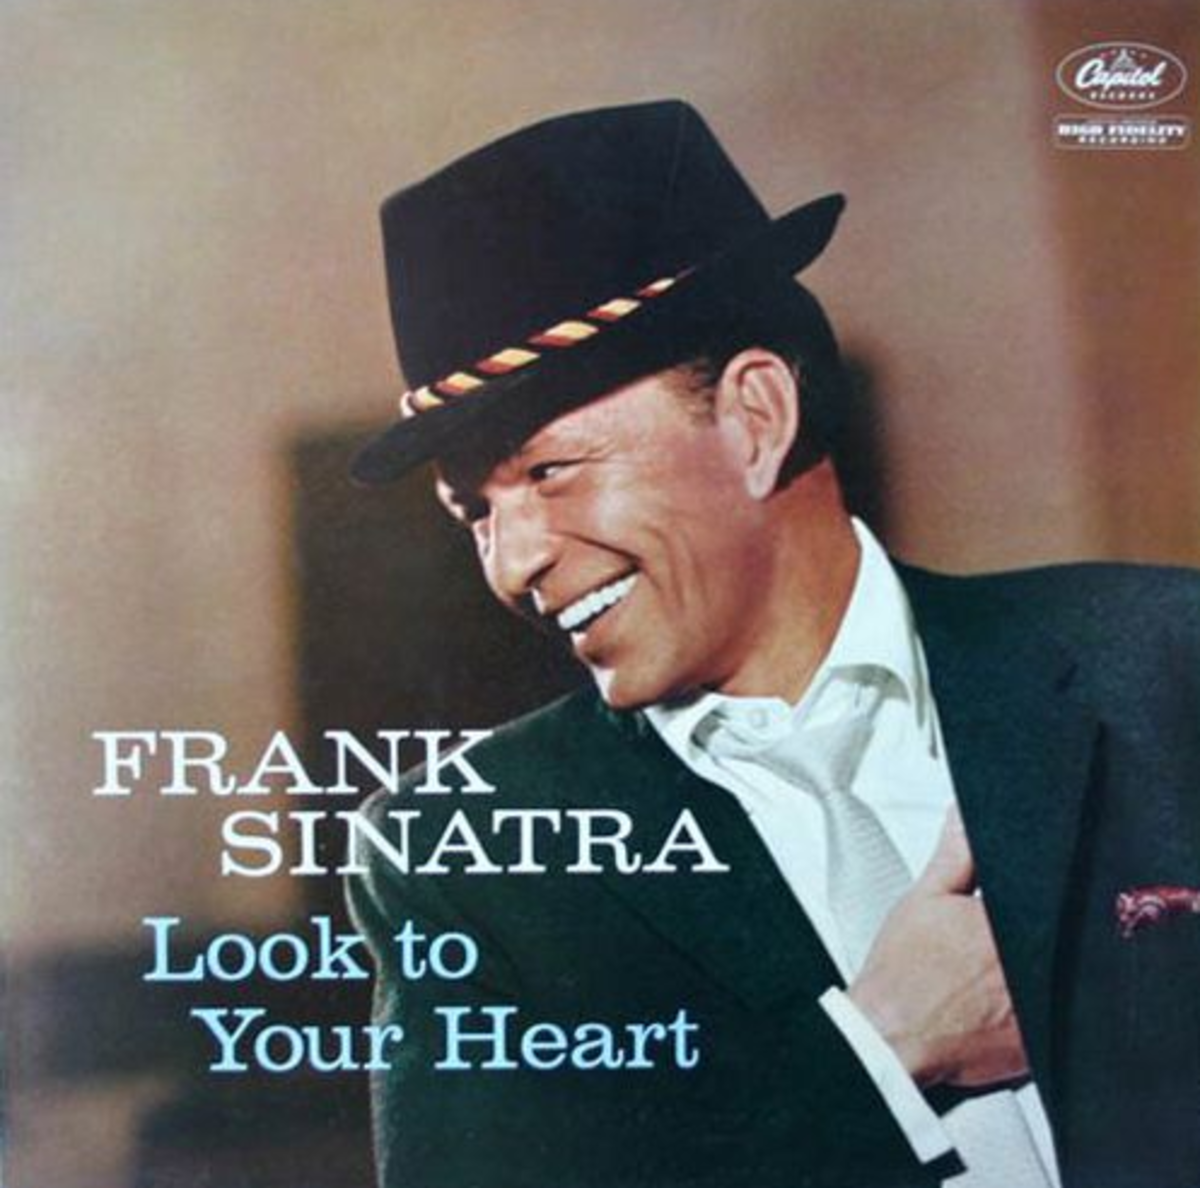 Making Love with Frank Sinatra